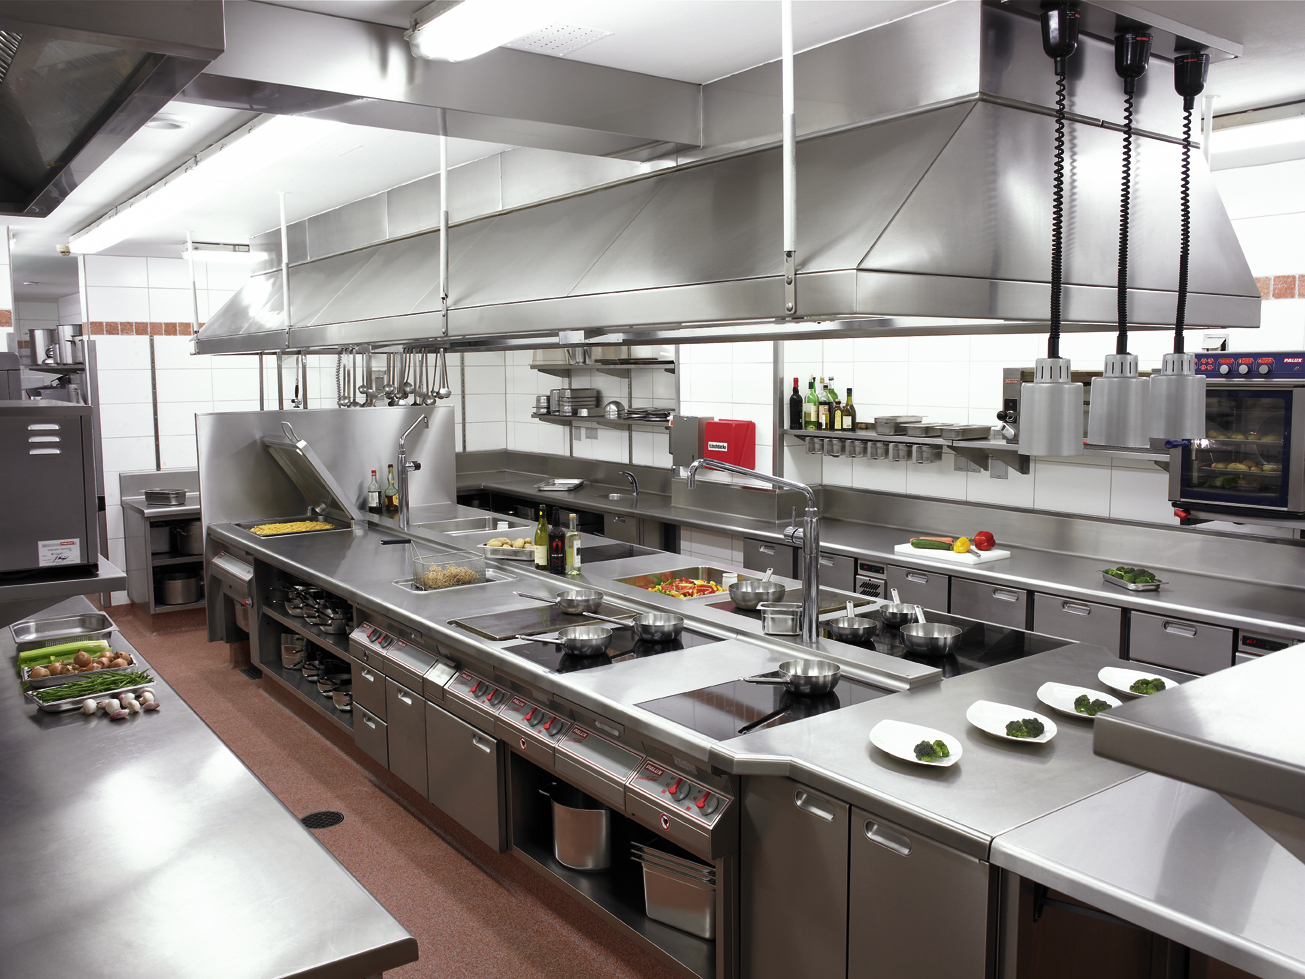 exceptional Orlando Florida Hotels With Kitchen #8: Hotels With Kitchens In Orlando - zitzat.com. Hotels With Kitchens In Orlando Zitzat Com